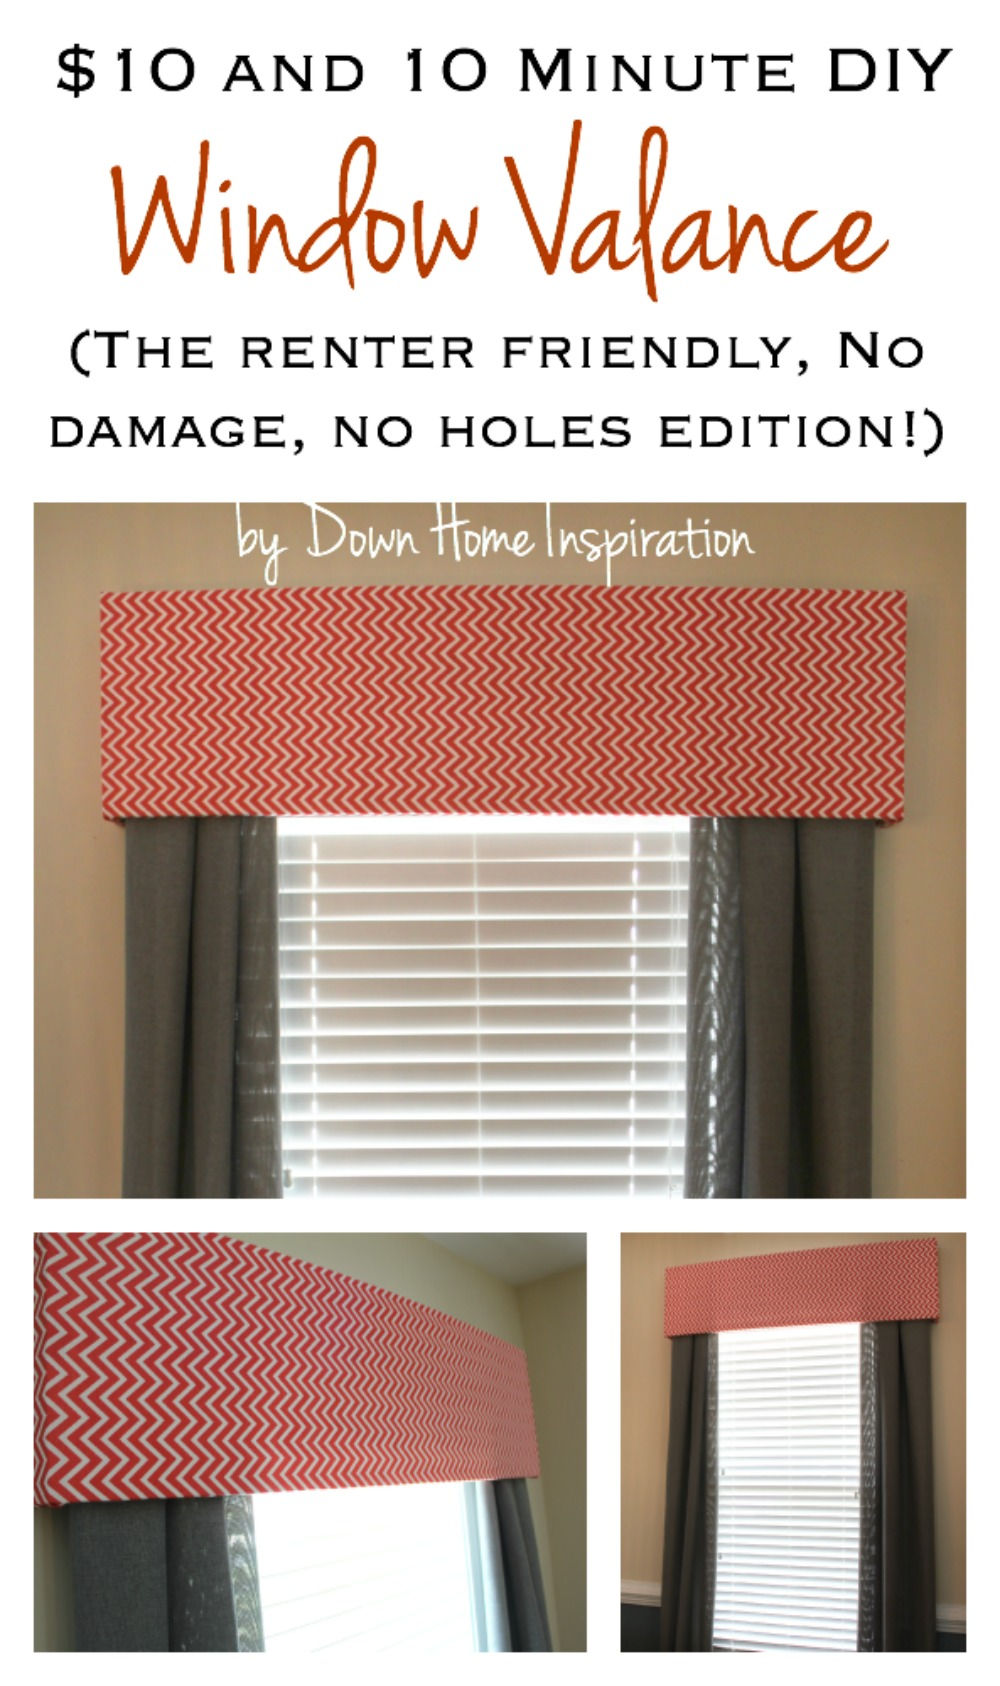 Renter friendly no holes no damage 10 and 10 minute diy window valance down home inspiration - Diy kitchen curtain ideas ...